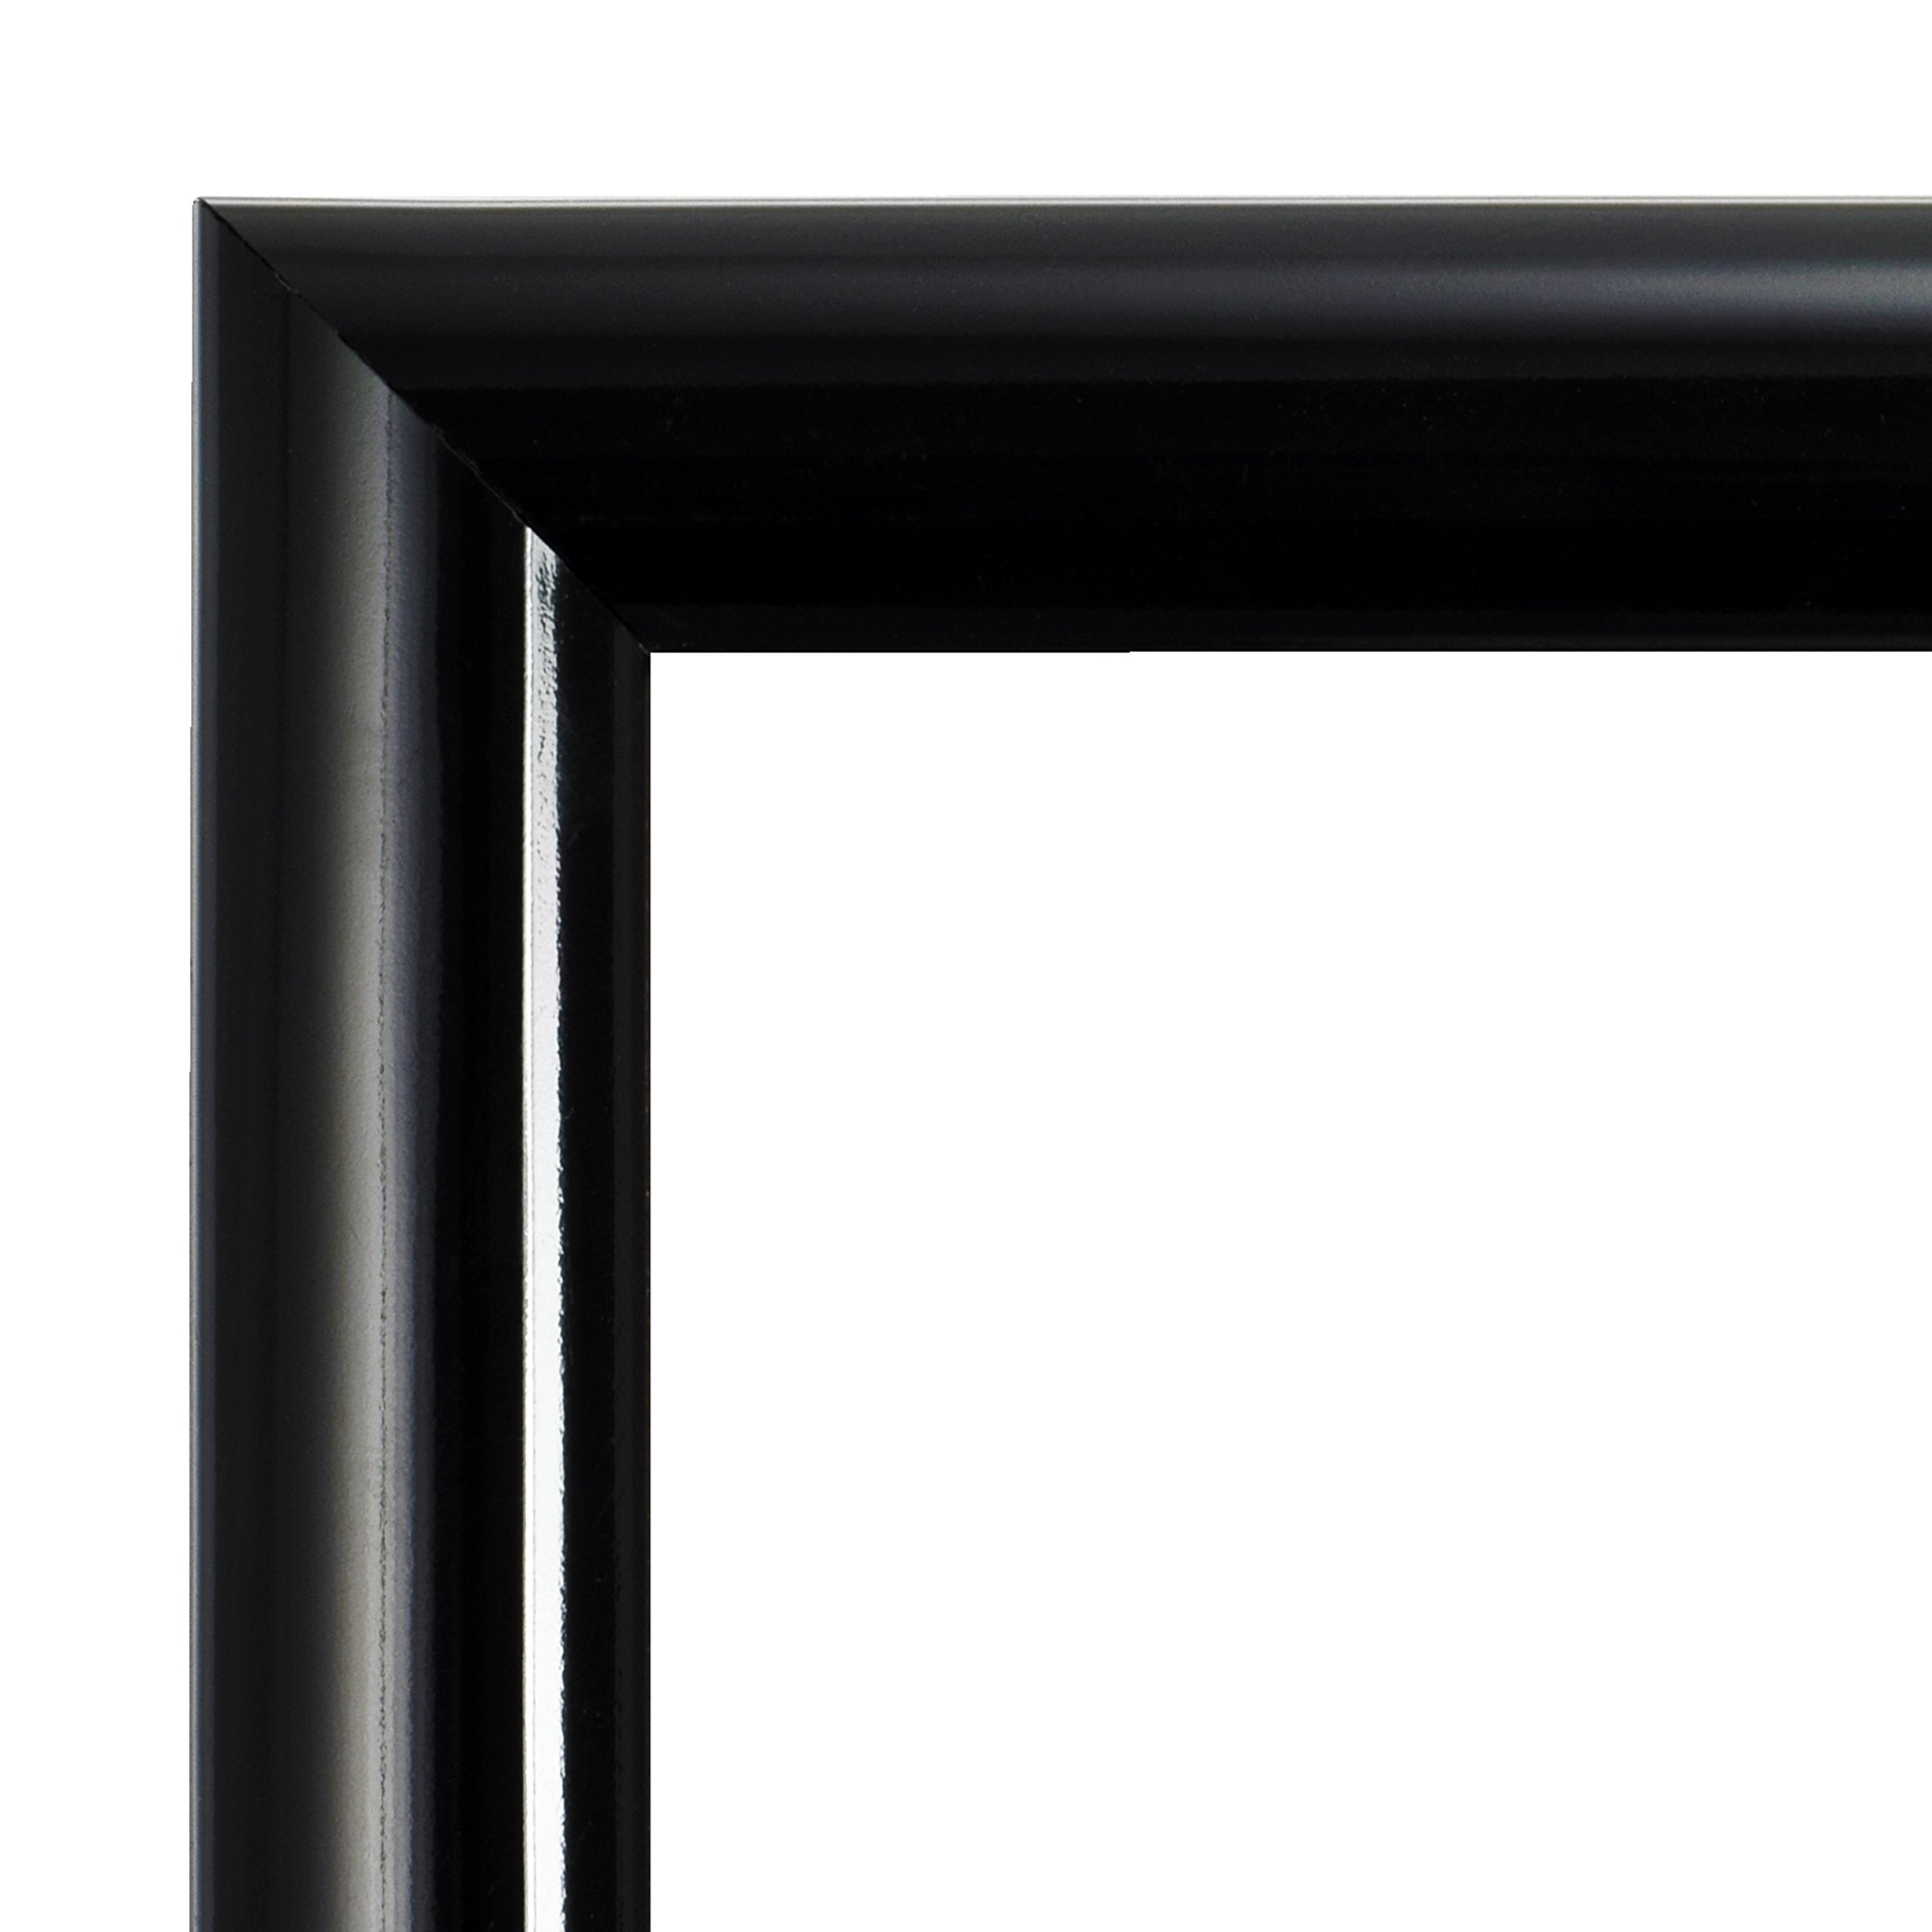 MCS Trendsetter Poster Frame, 22 by 28-Inch, Black (2-Pack) by MCS (Image #3)